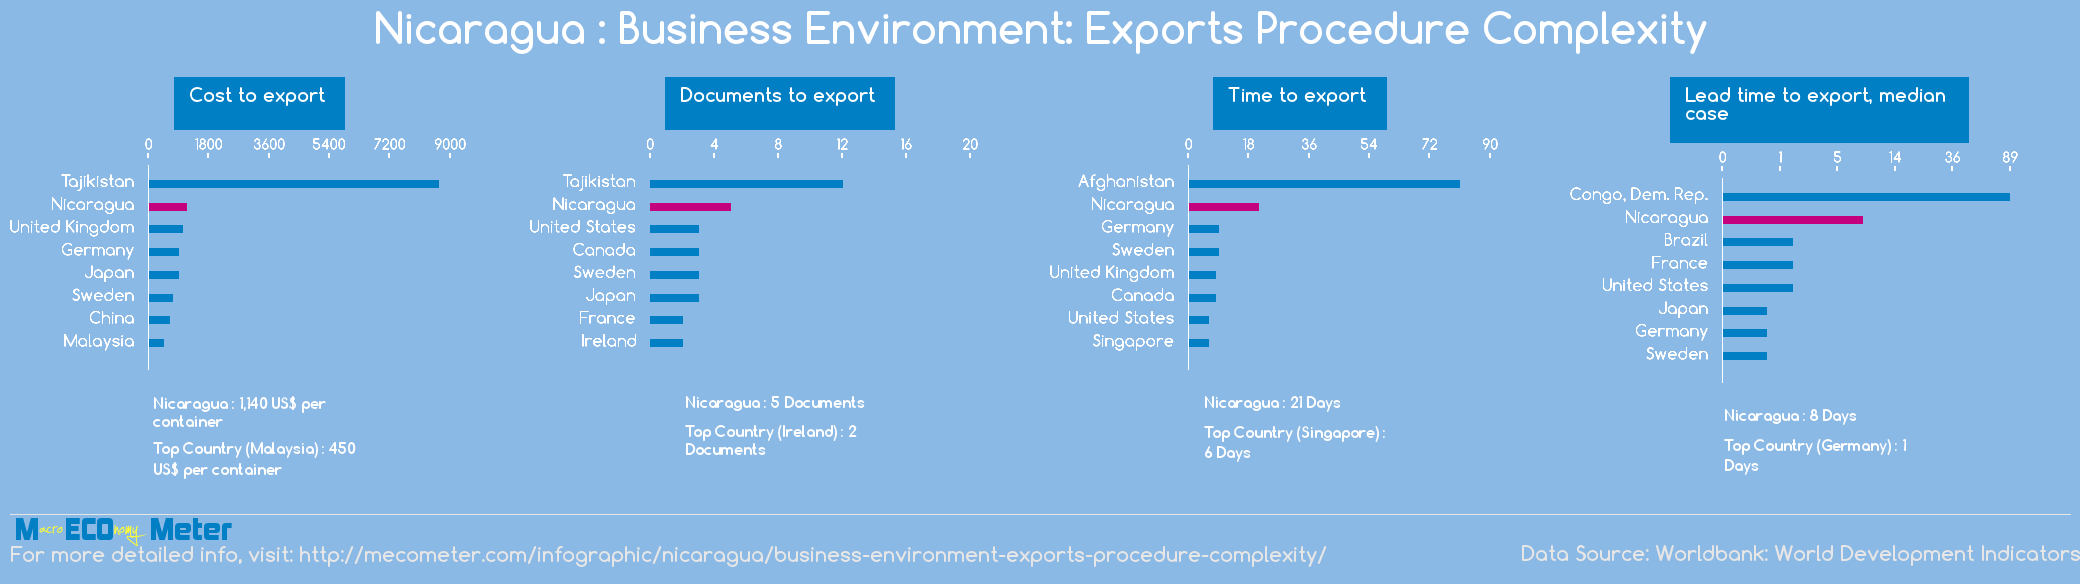 Nicaragua : Business Environment: Exports Procedure Complexity